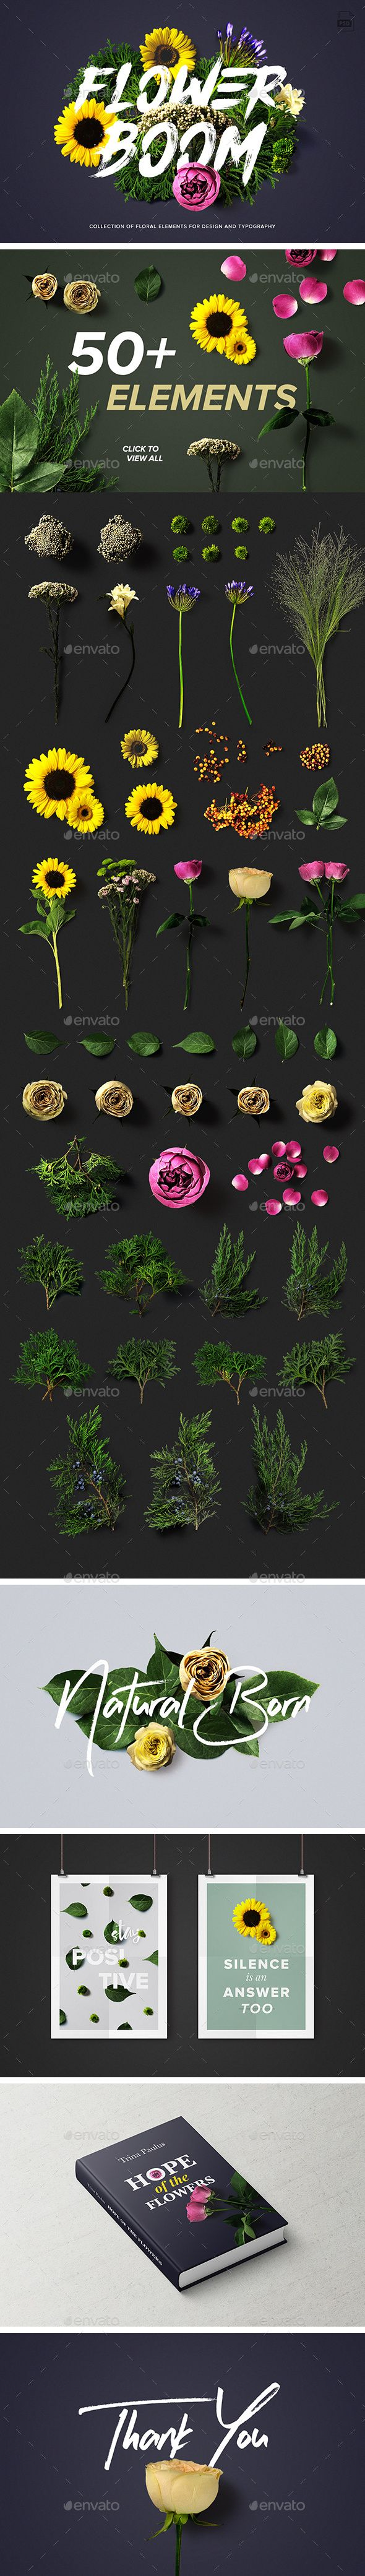 Flower Boom Graphic Pack — Photoshop PSD #photoshop • Download ➝ https://graphicriver.net/item/flower-boom-graphic-pack/19187731?ref=pxcr